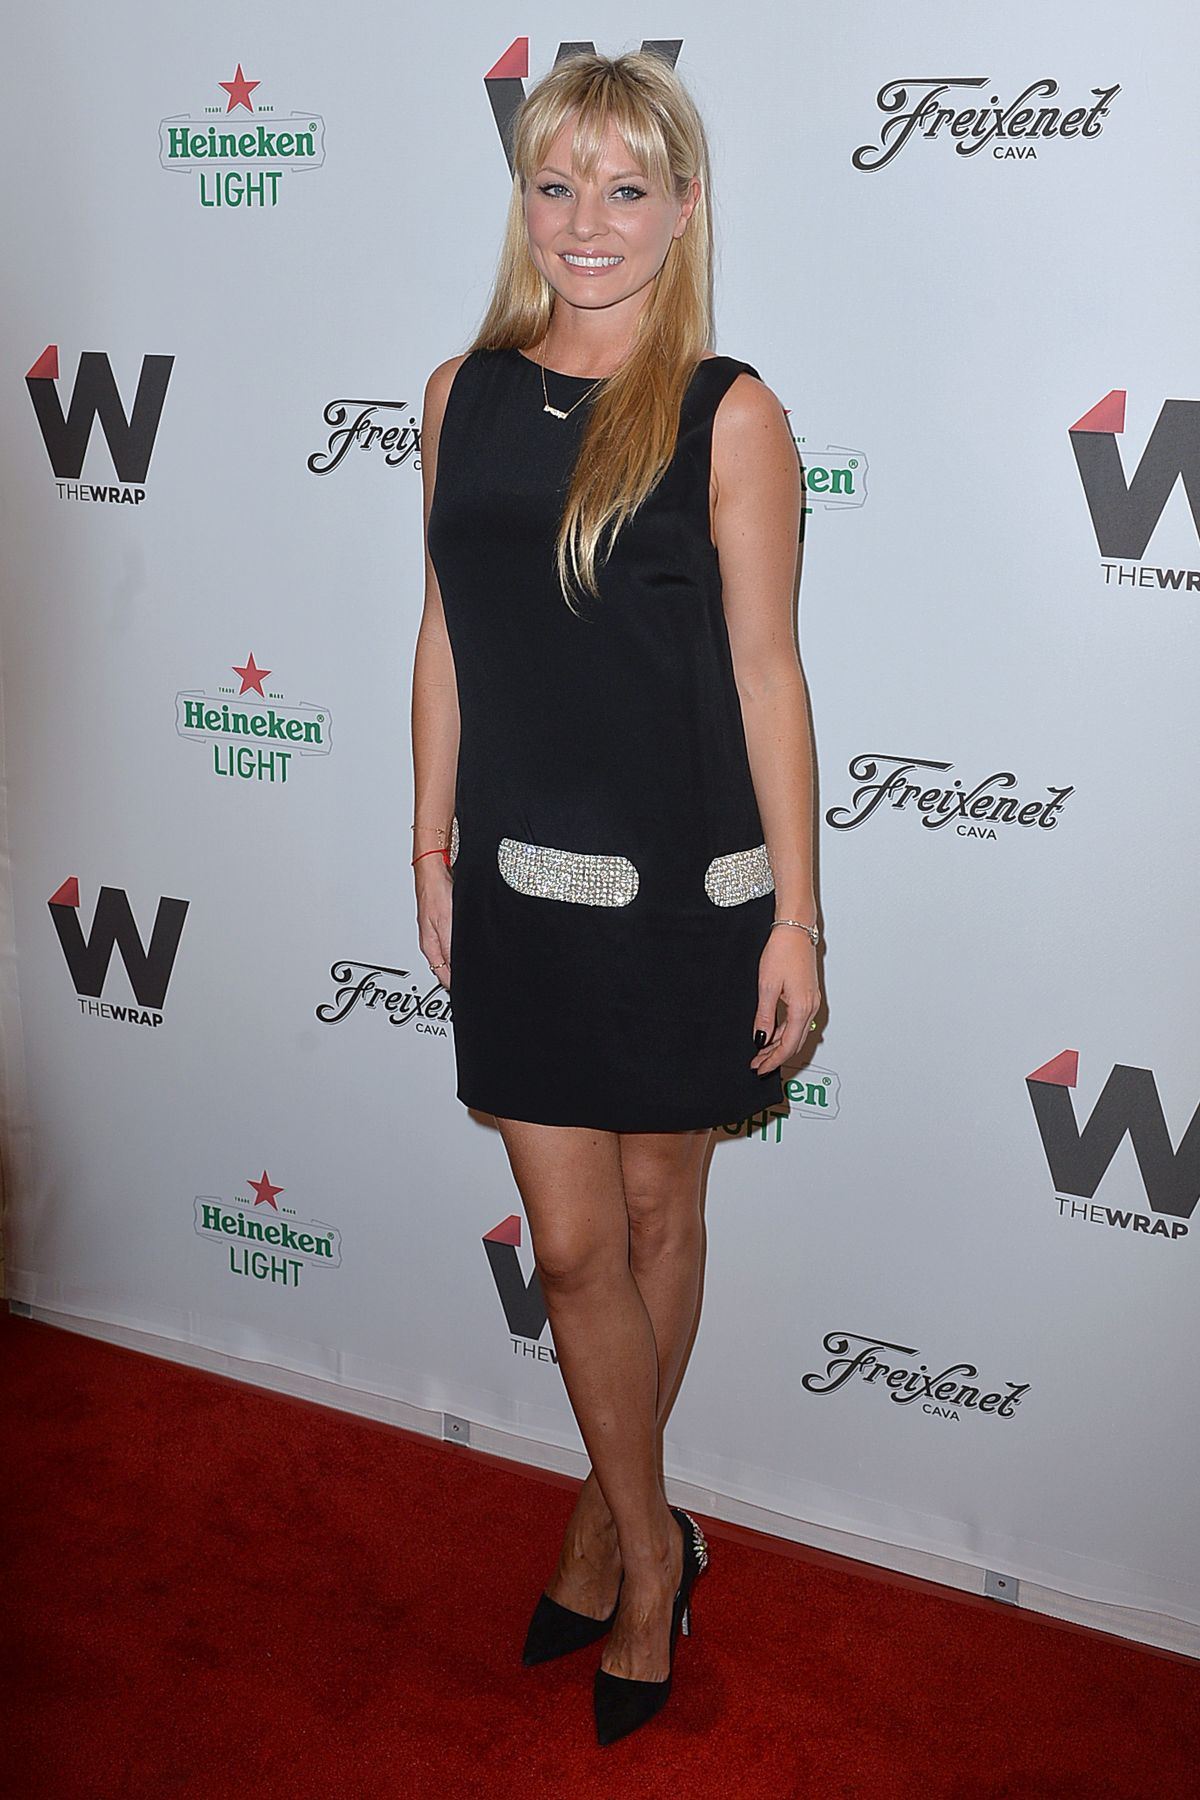 KAITLIN DOUBLEDAY at Thewrap's 2015 Emmy Party in West Hollywood